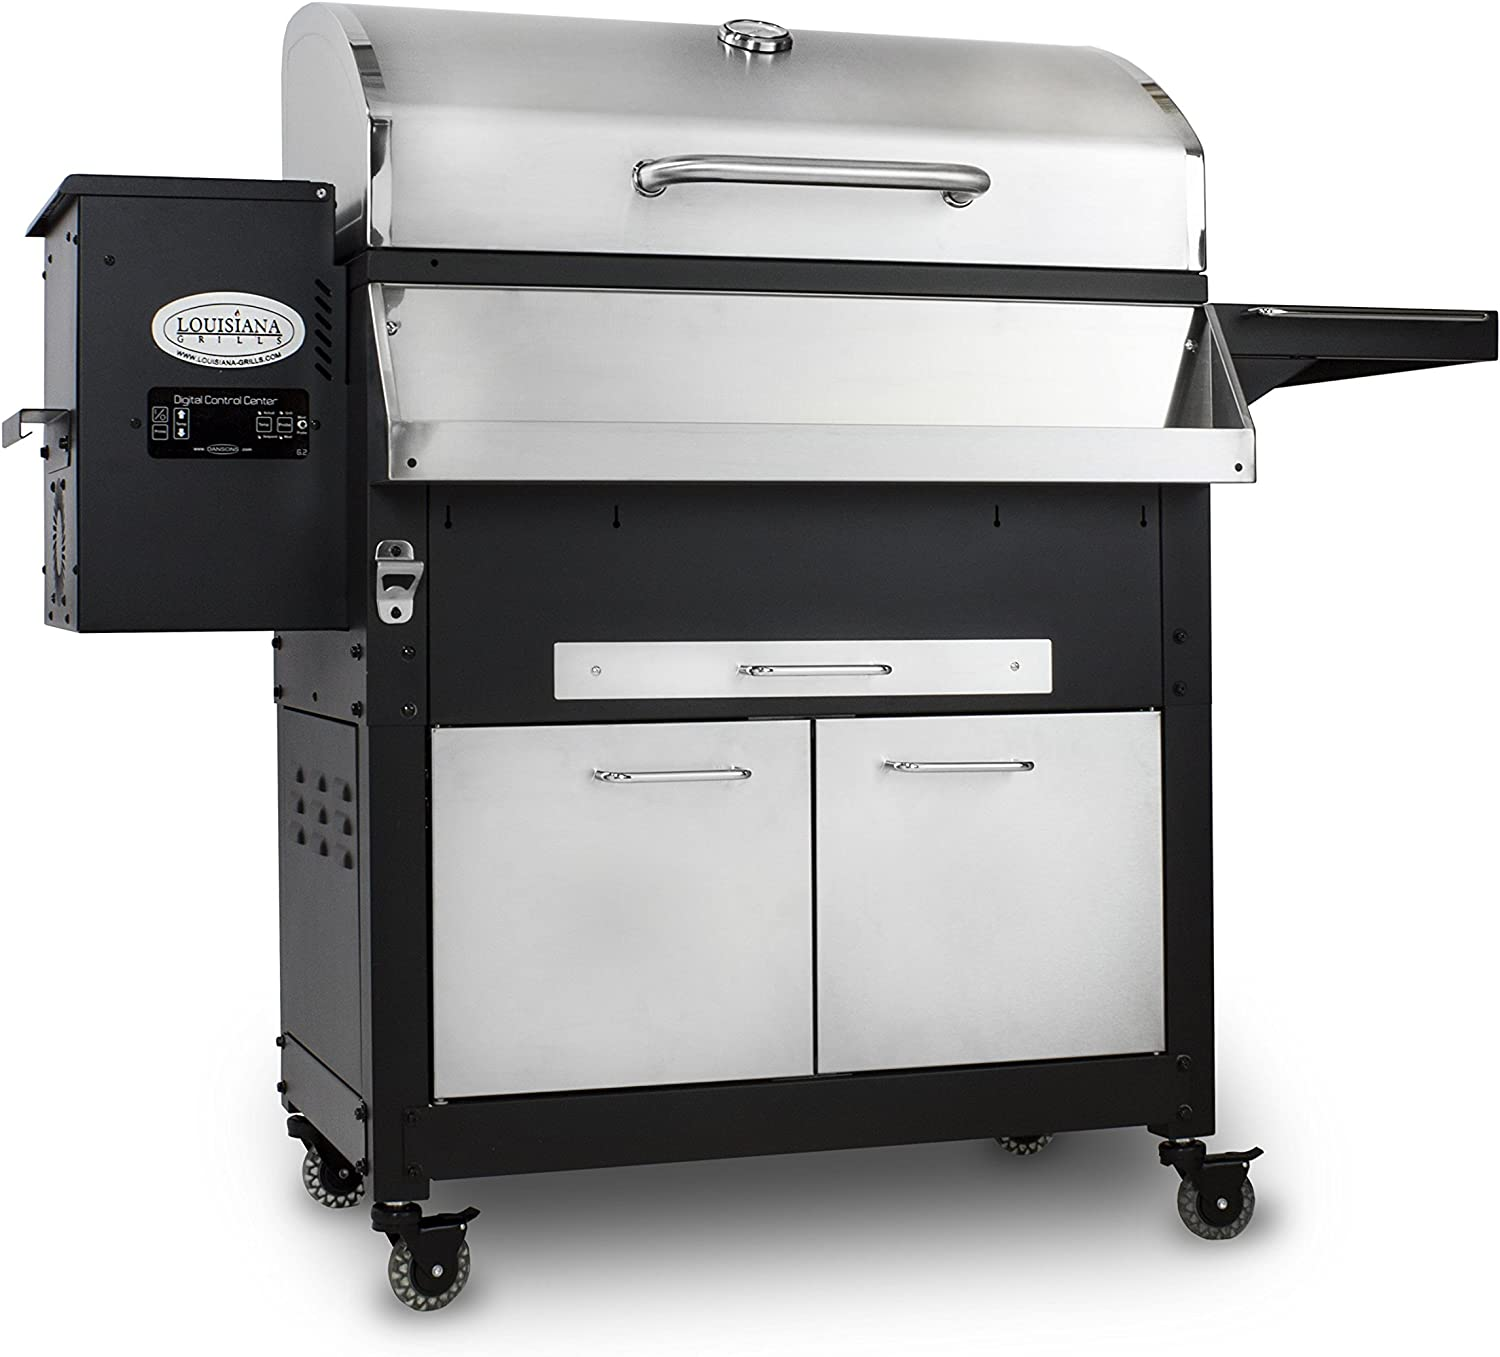 Louisiana Grills 900 Series Electric Wood Pellet BBQ Grill And Smoker Cover